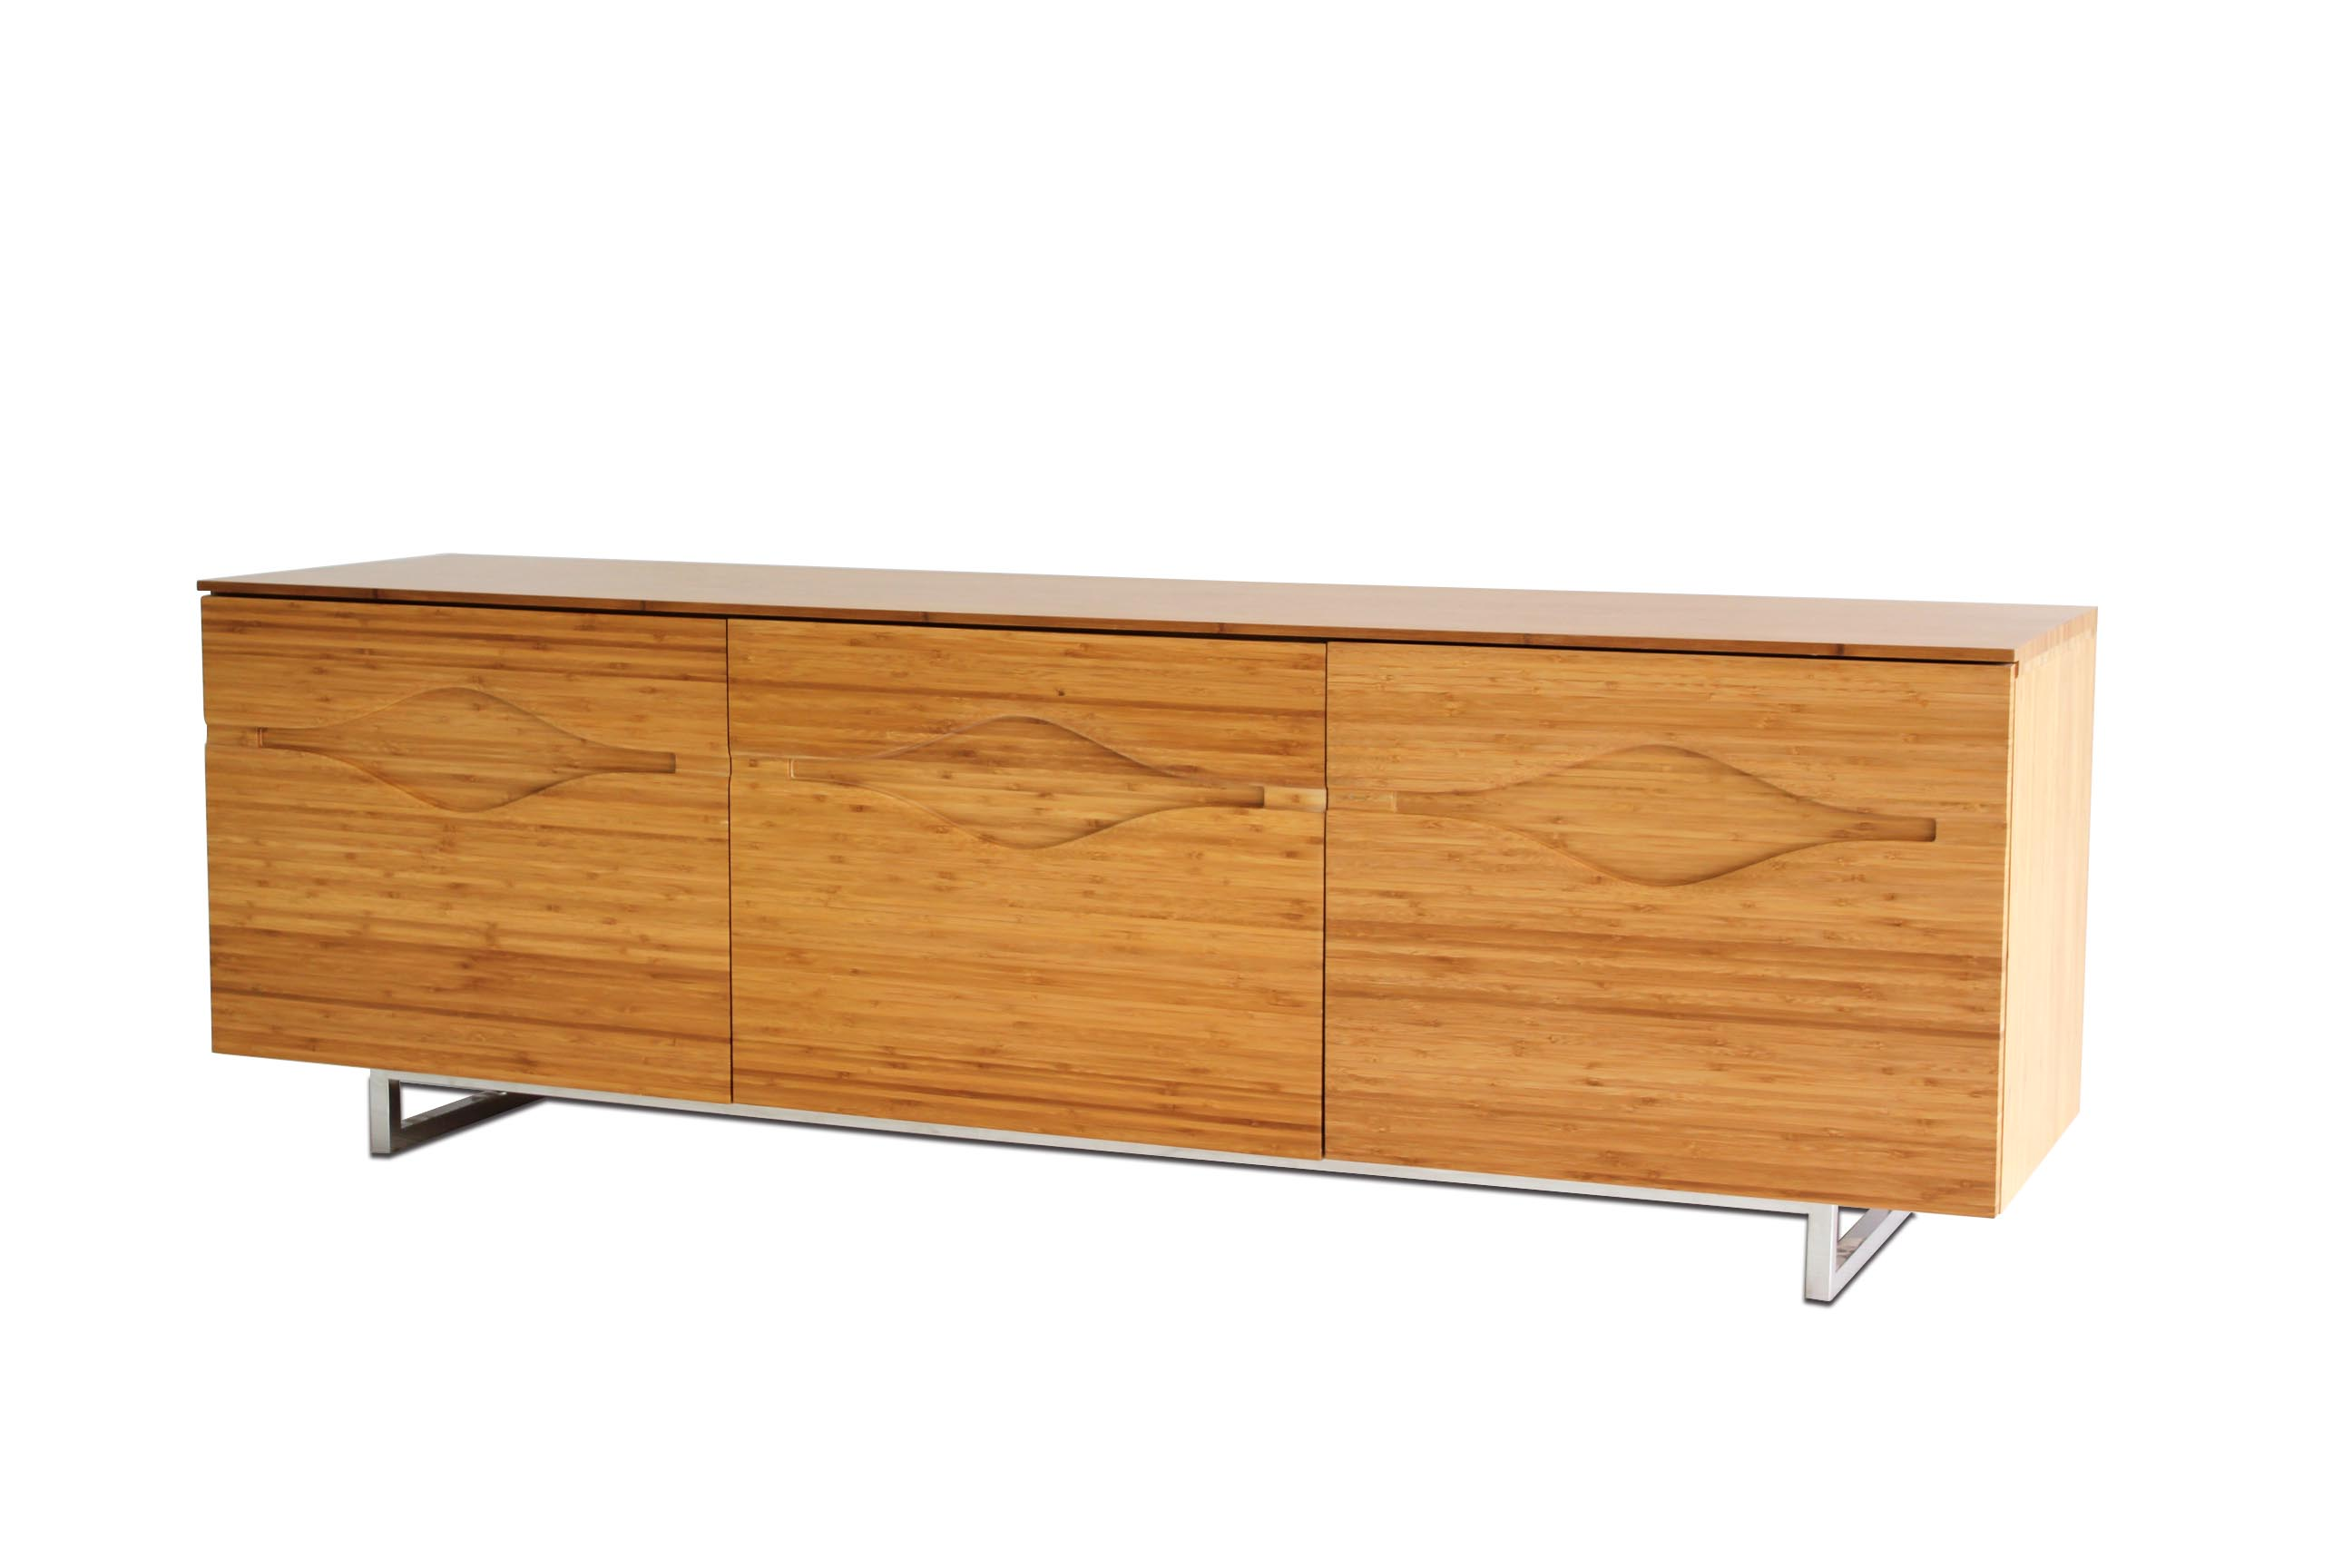 Groovy TV Cabinet (9314)